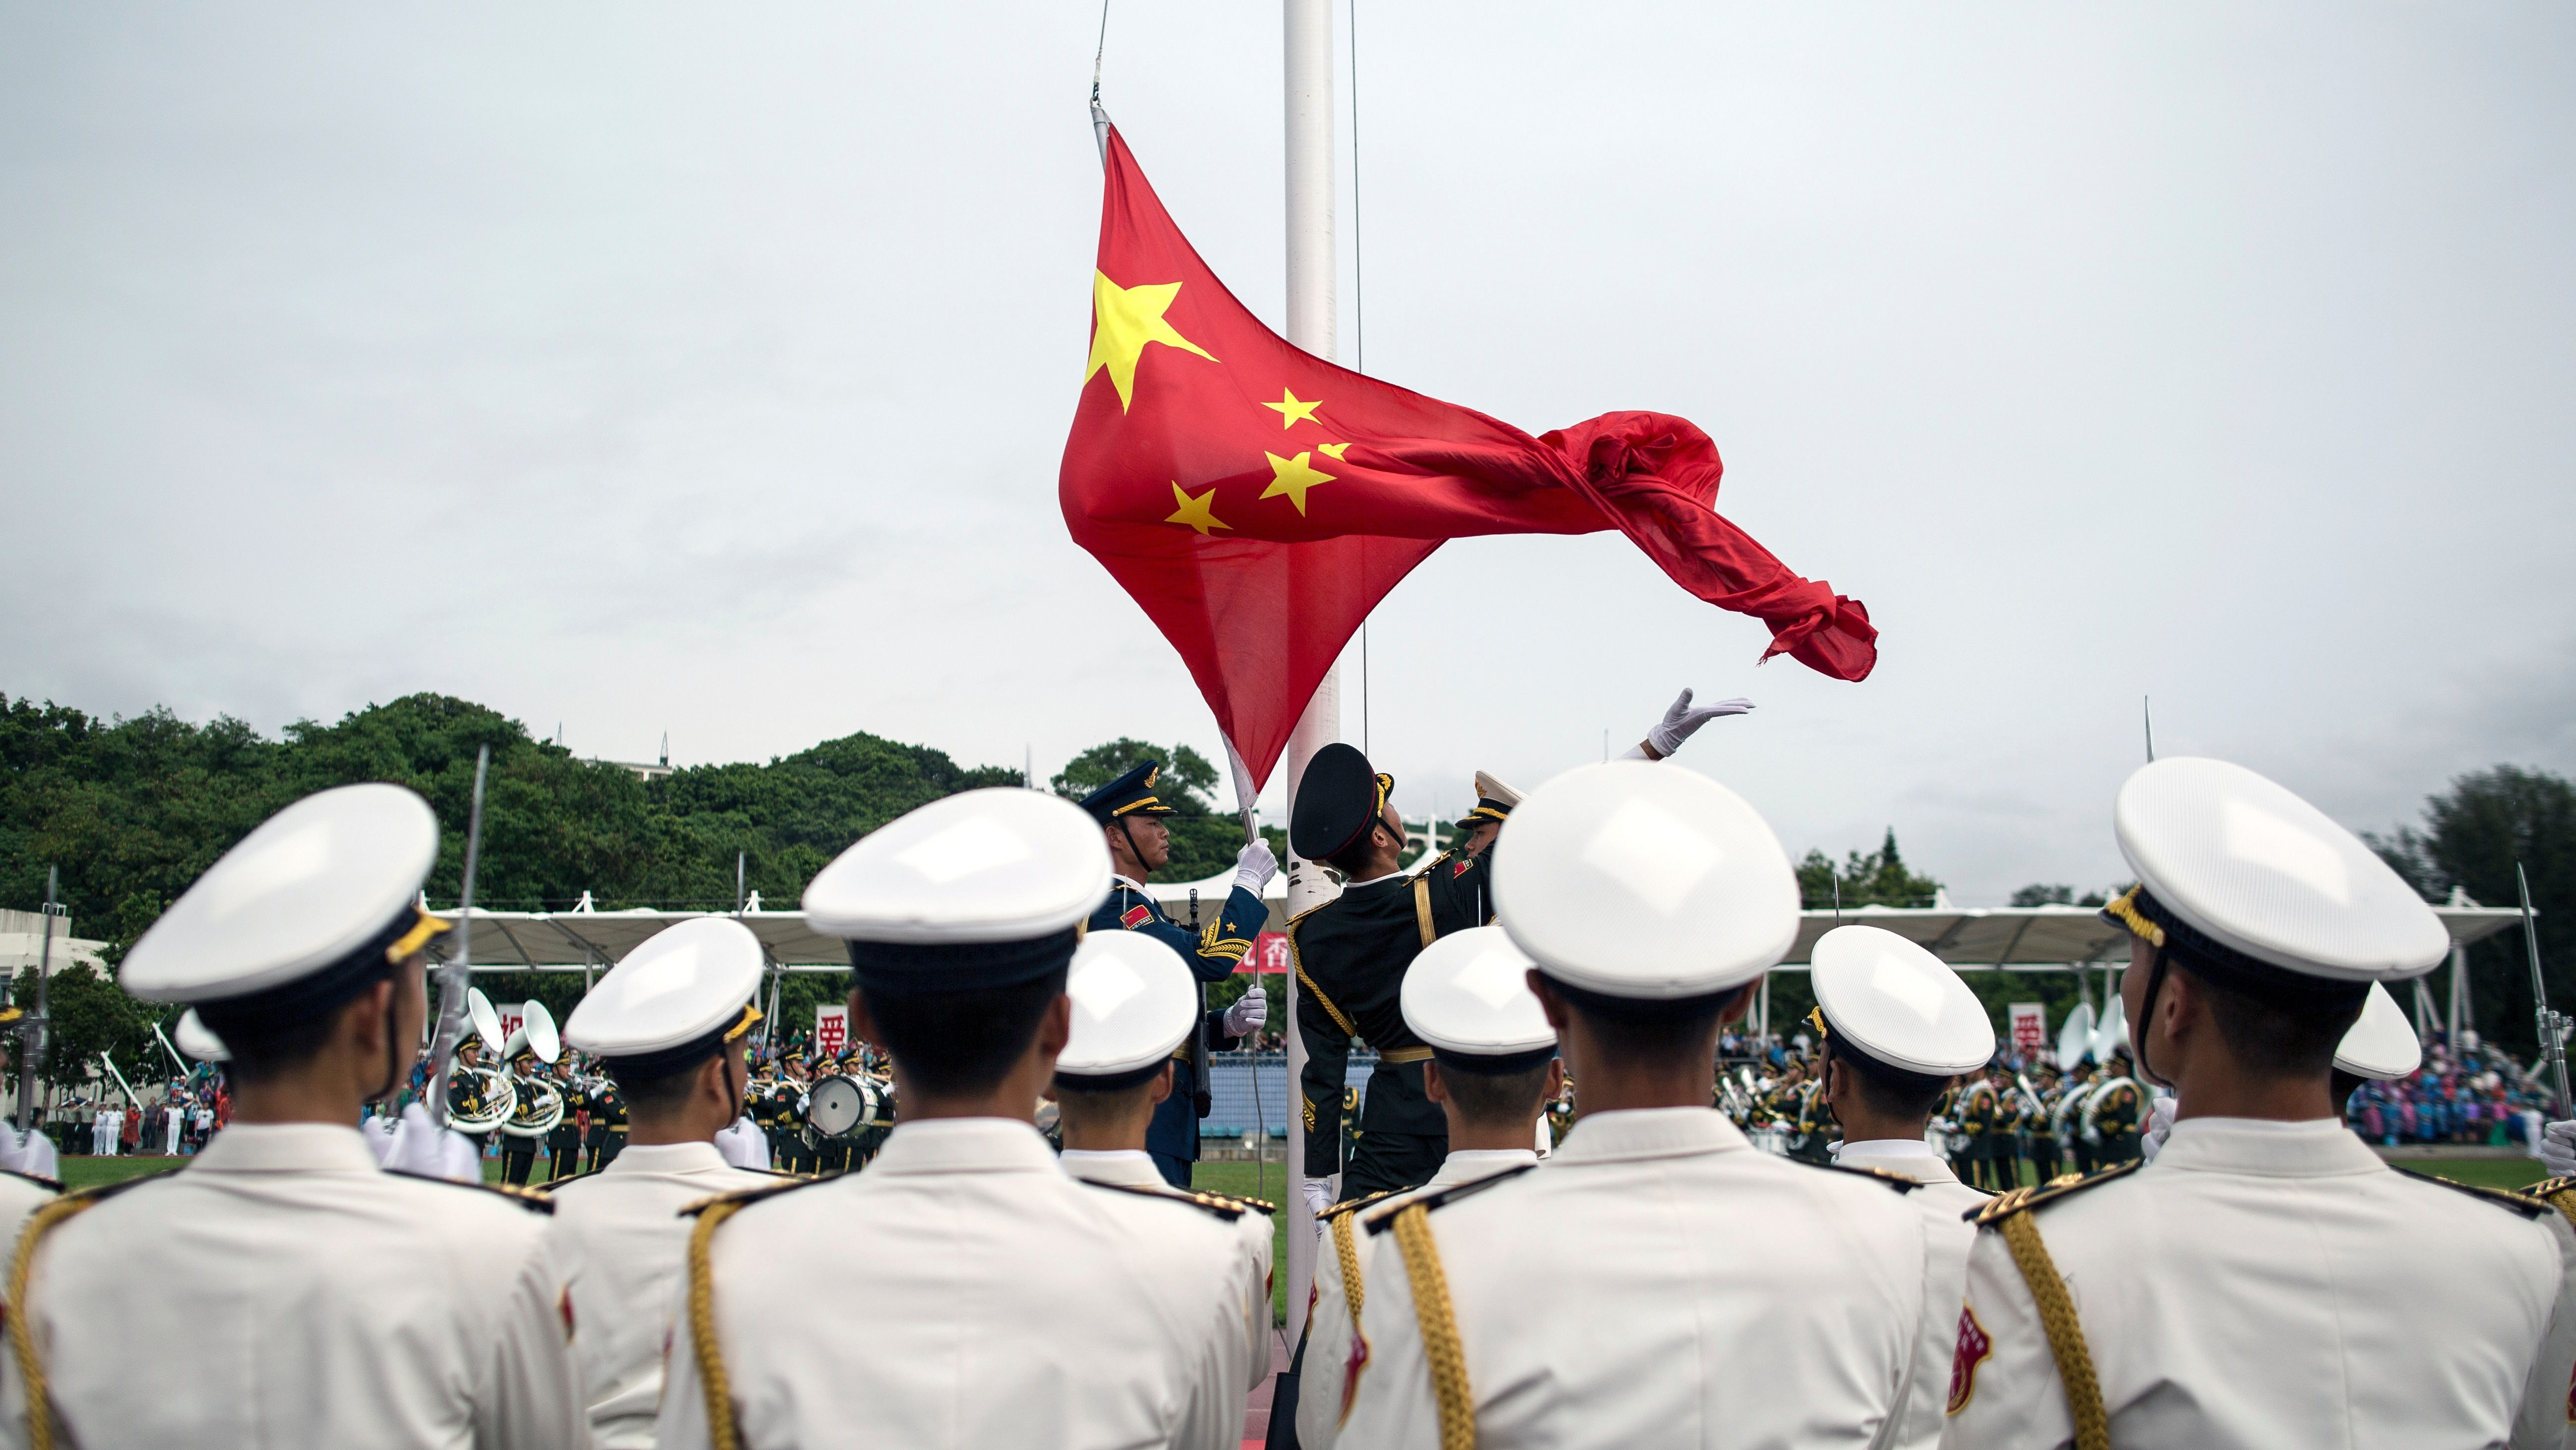 People's Liberation Army (PLA) soldiers participate in a flag raising ceremony during an open day at the PLA navy base in Hong Kong, China, 08 July 2017 (reissued 12 July 2017). According to reports, China ships carrying military personnel departed on 11 July 2017 from Zhanjiang, southern China and set sails to Djibouti. China is to establish it's fiorst ever overseas military base in the Djibouti, at the Horn of Africa.